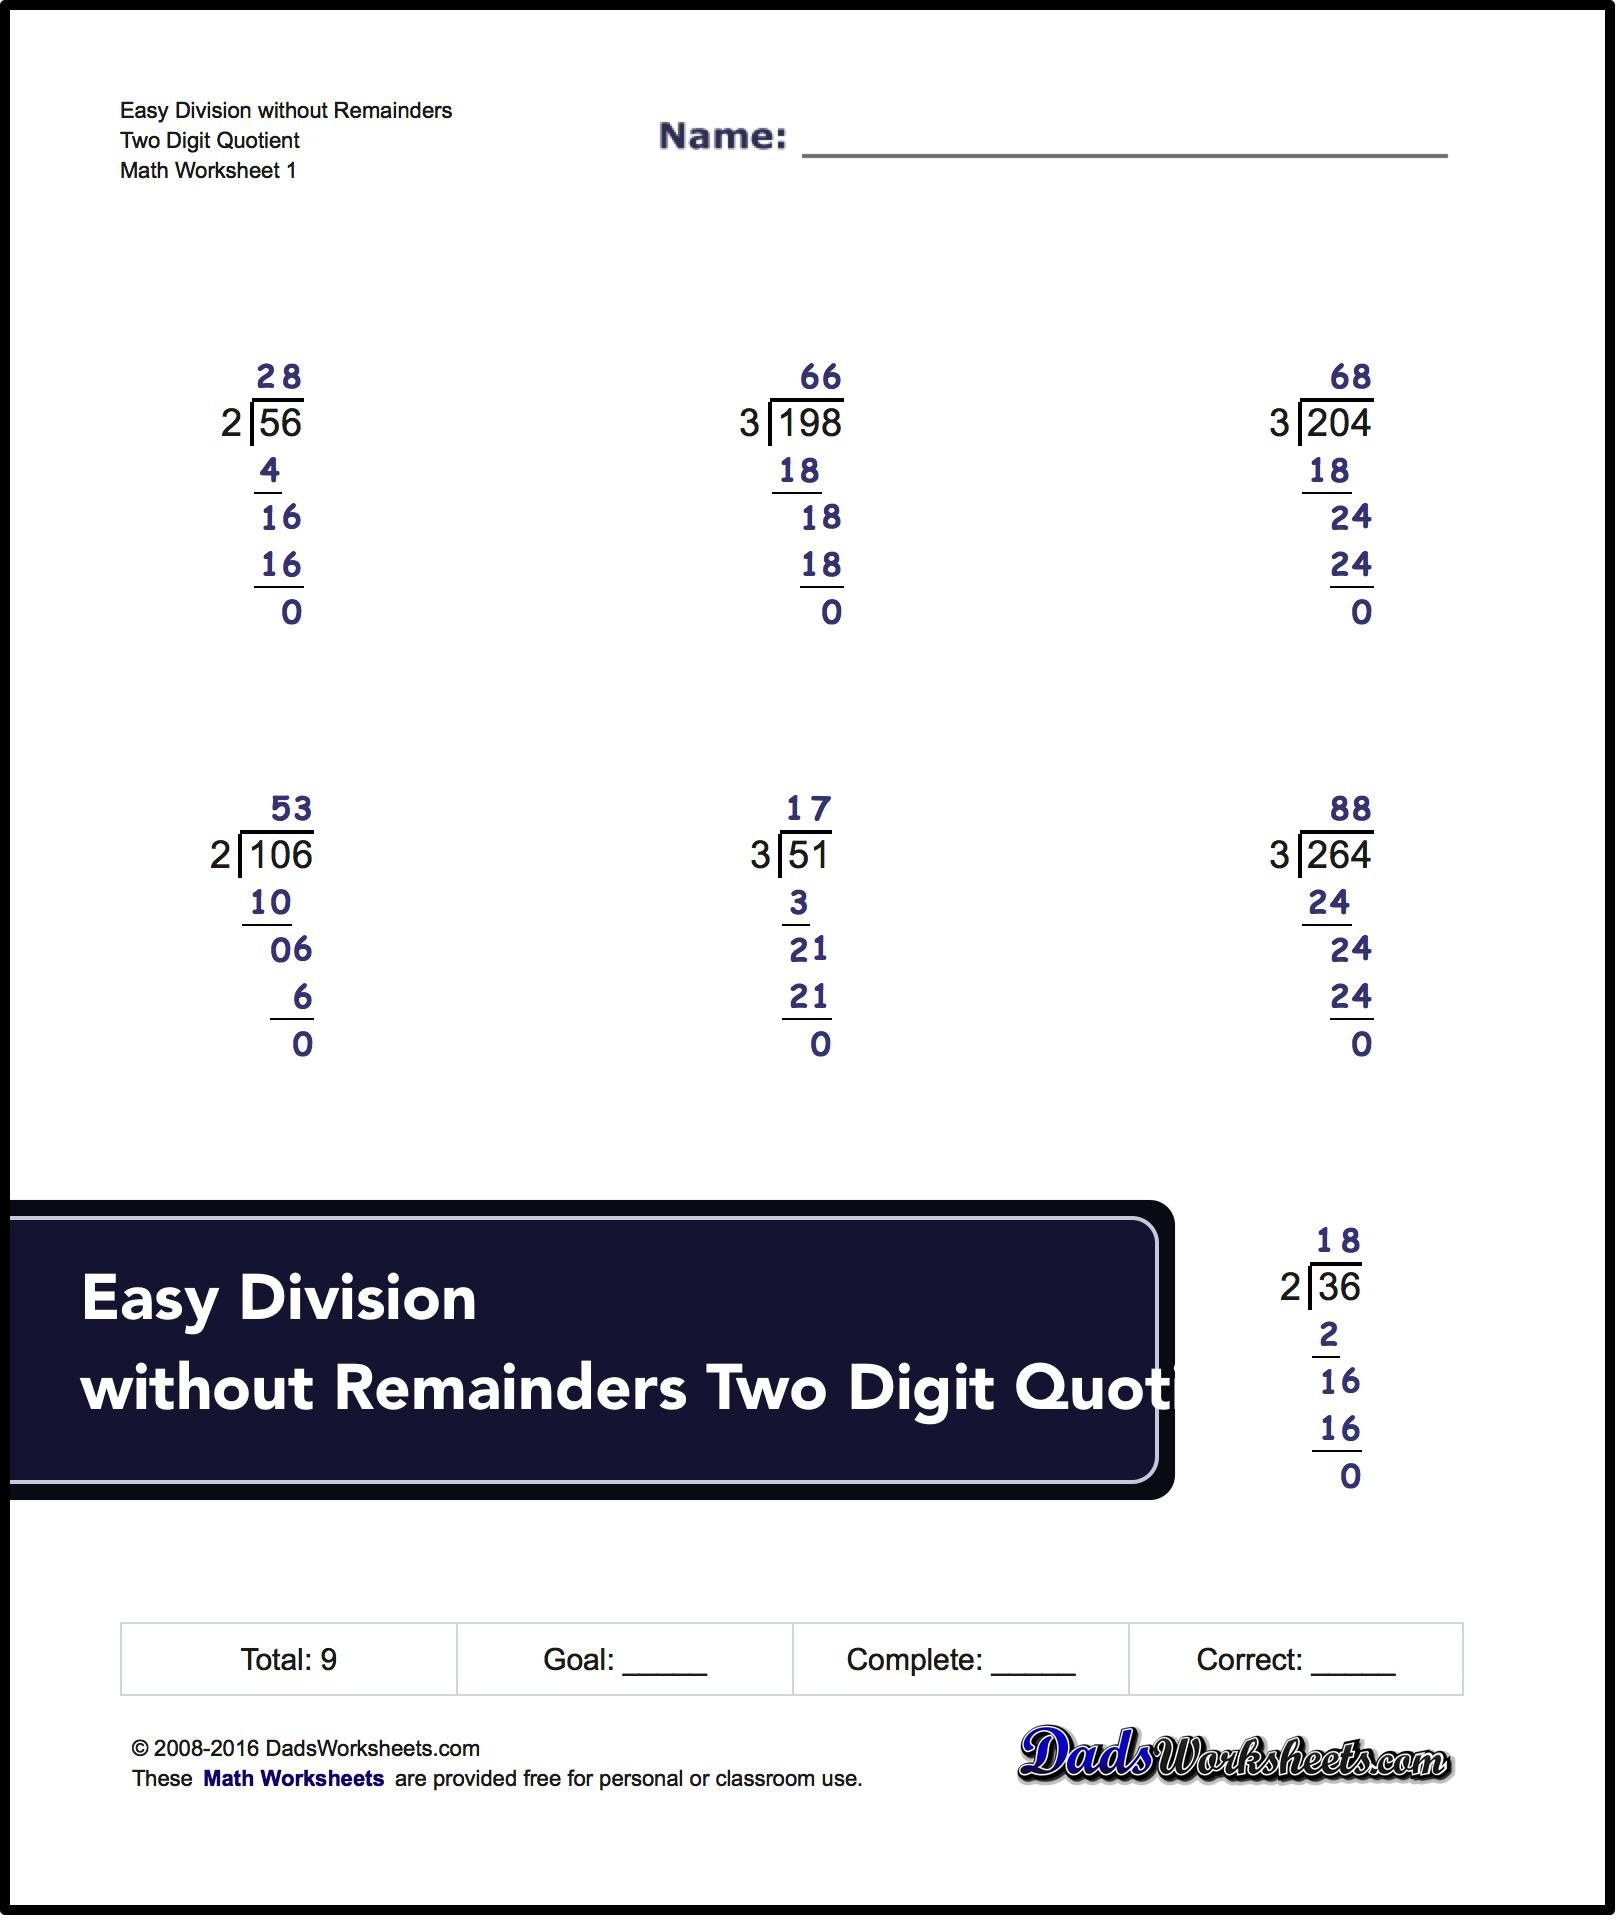 Practice Your Division Skills With These Free Math Worksheets For